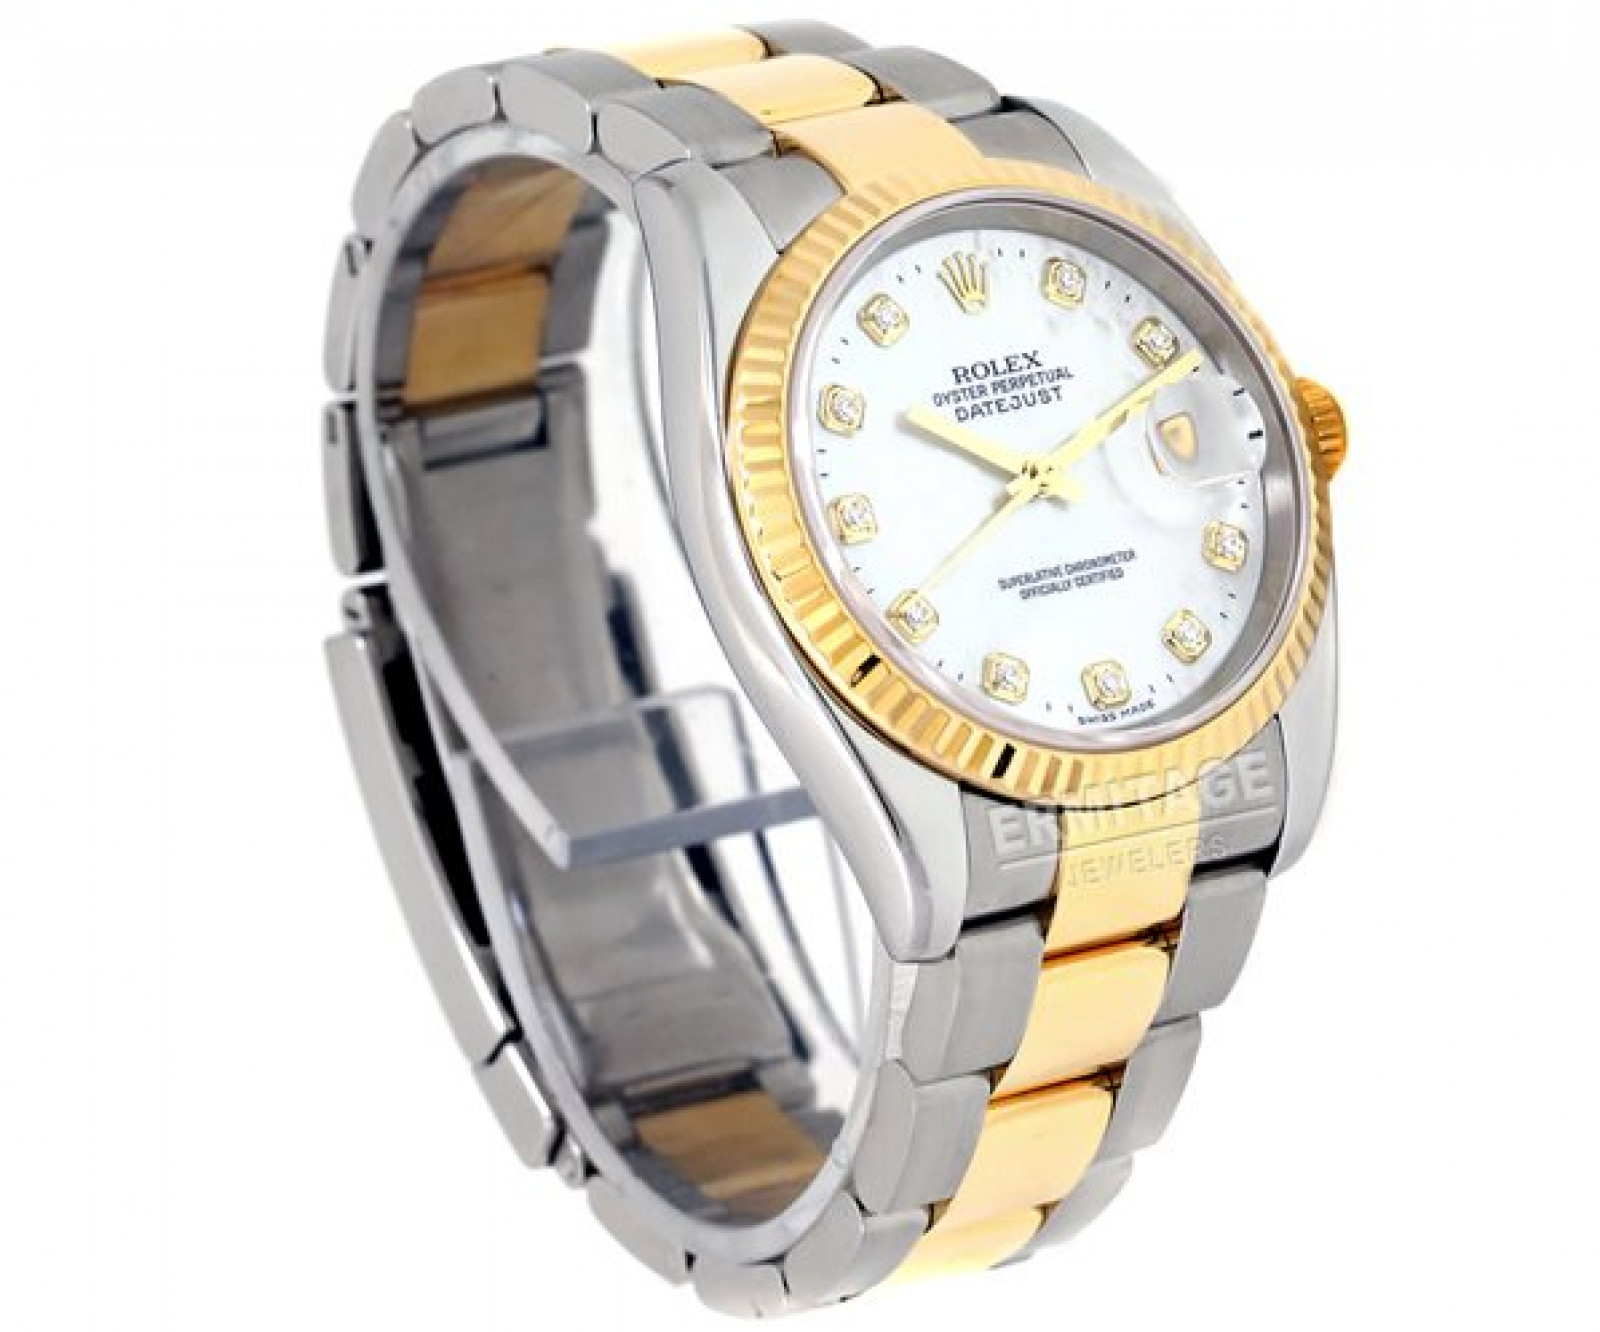 Rolex Datejust 116233 with Diamonds on White Dial